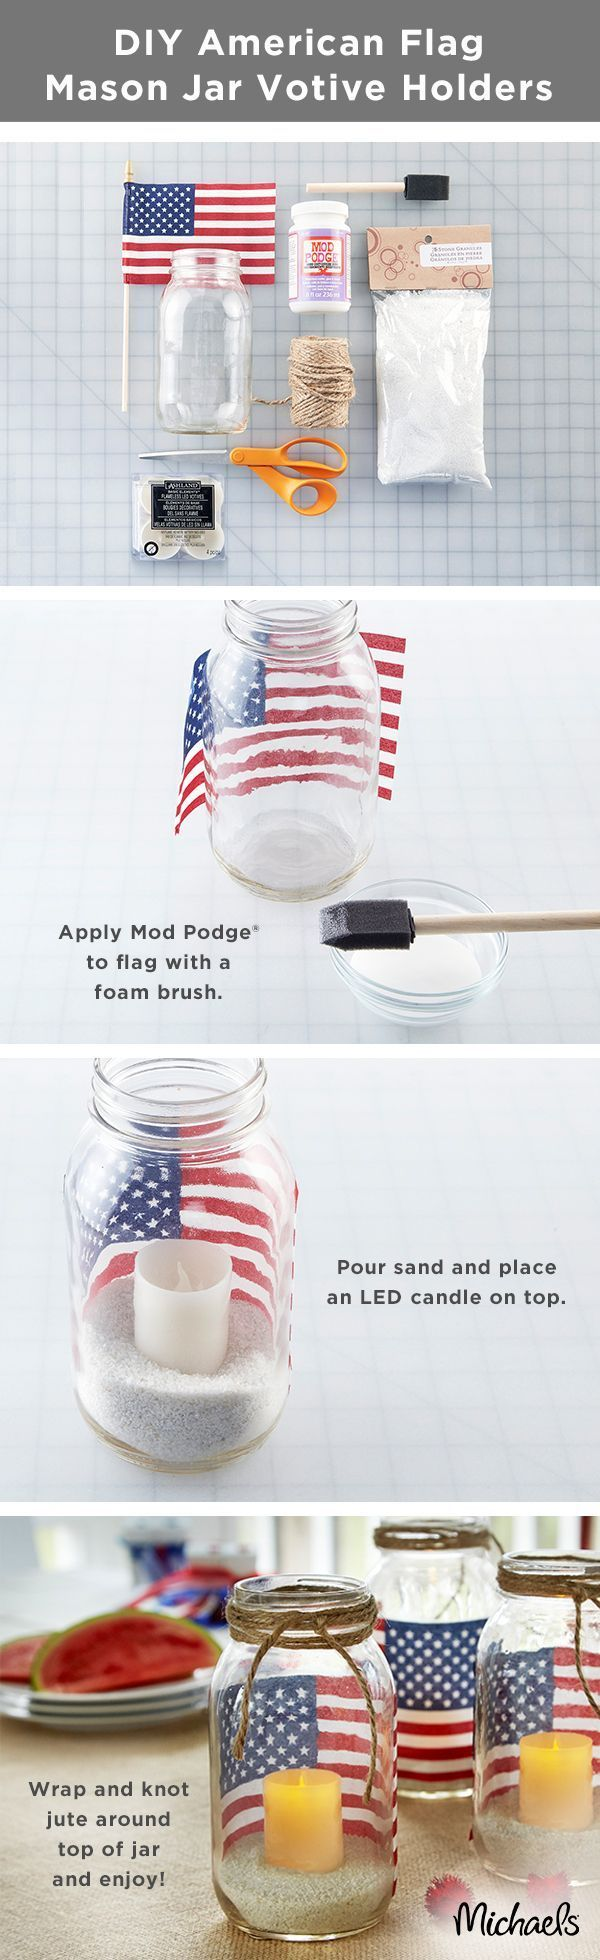 Brighten your home or patio with these patriotic diy american flag